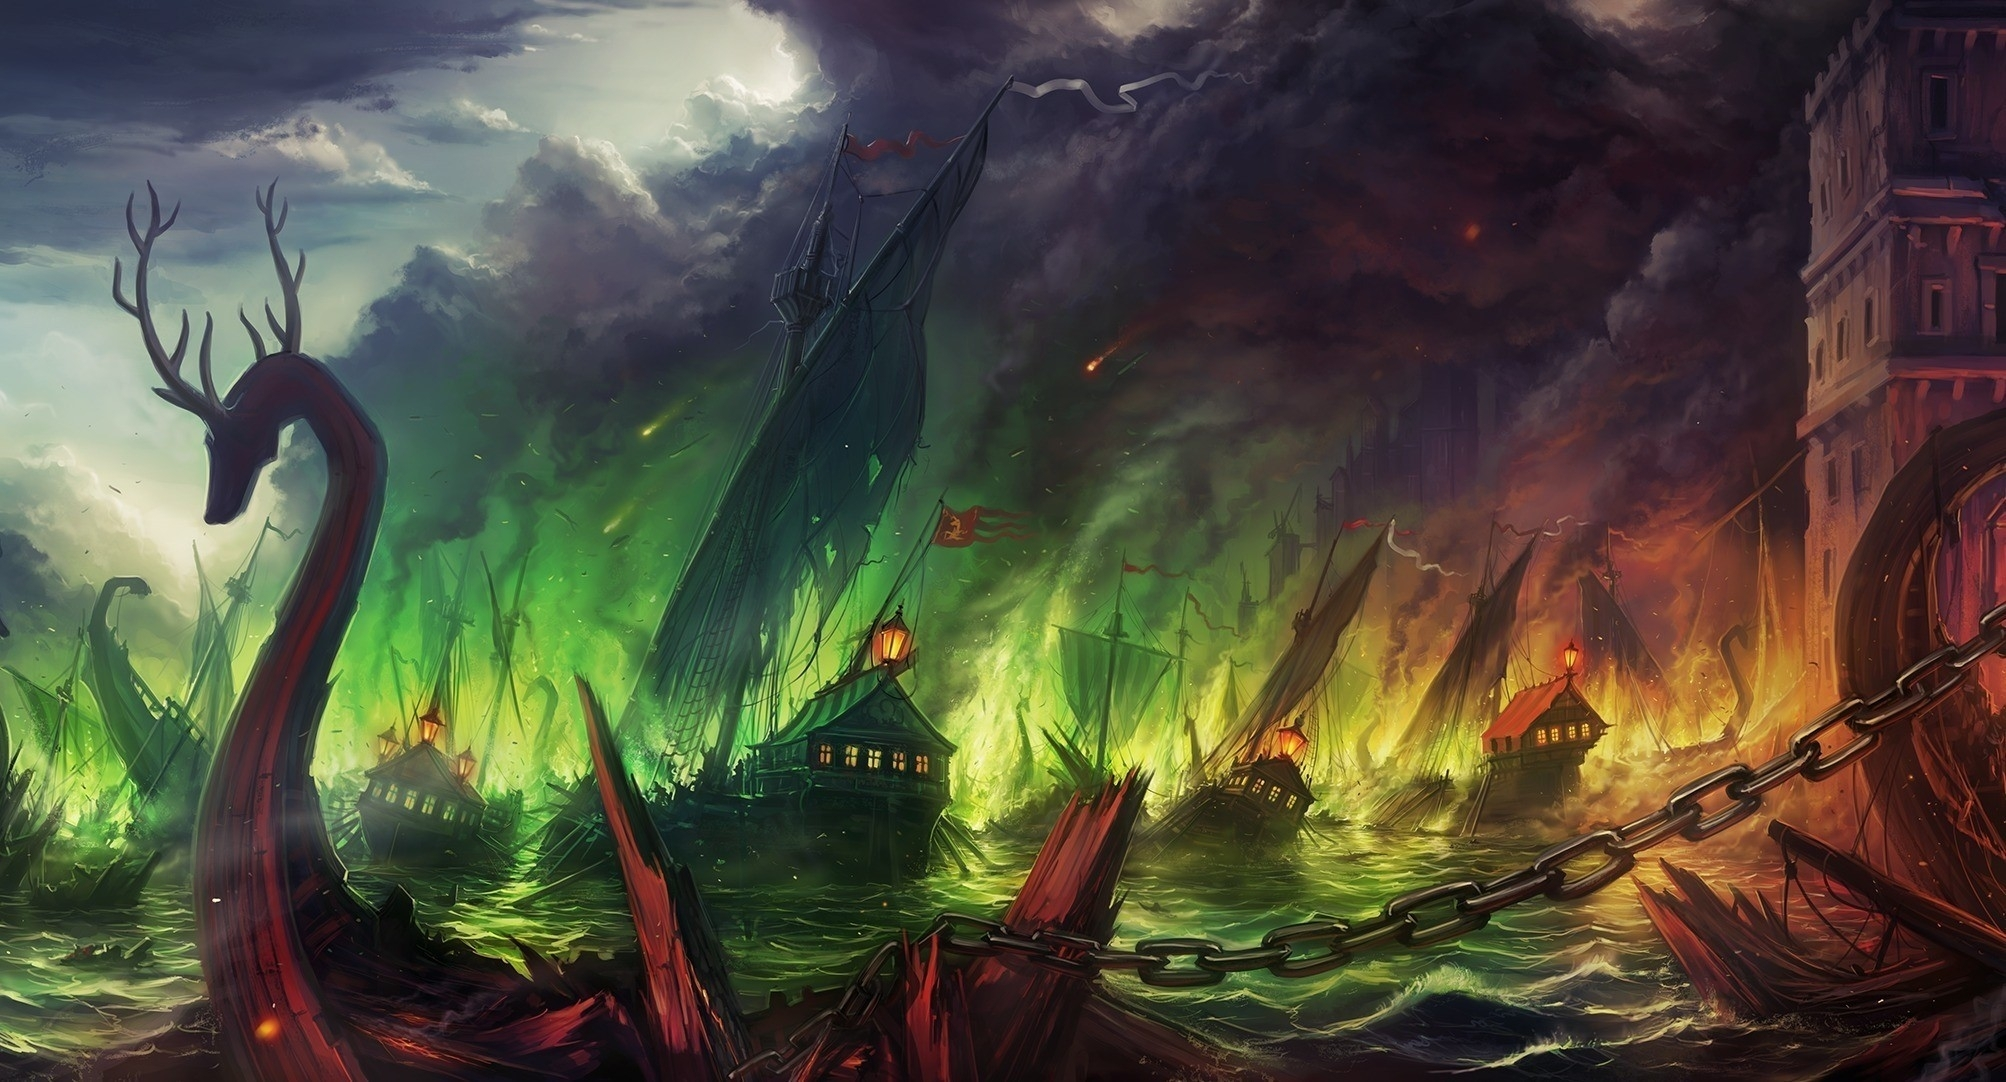 a song of ice and fire painting wallpaper | hd wallpapers